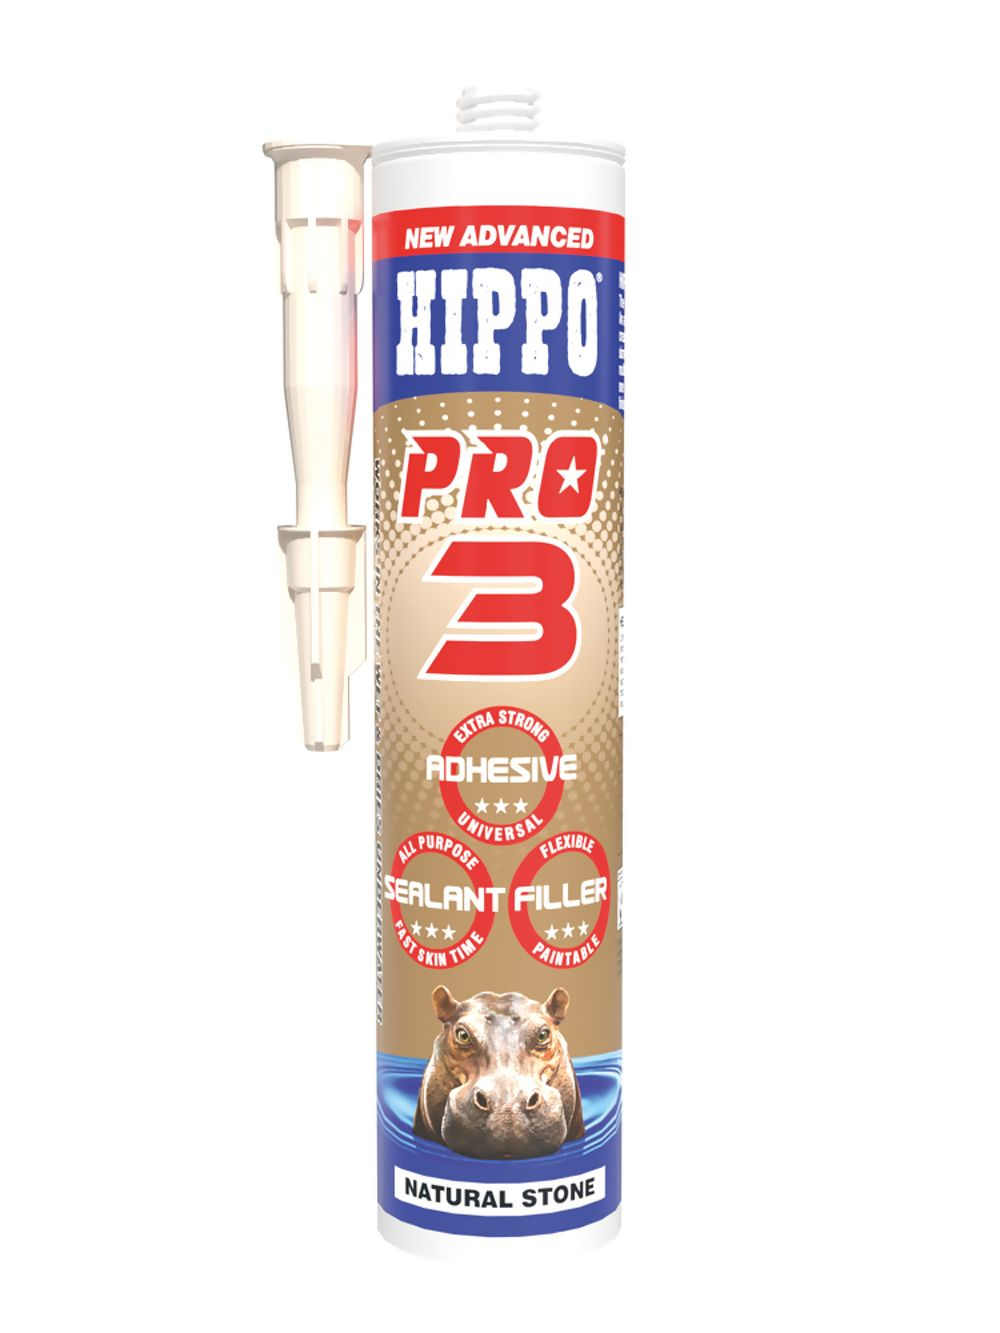 Hippo Pro 3 All Weather Sealant, Adhesive & Filler Natural 310ml Ref H18515